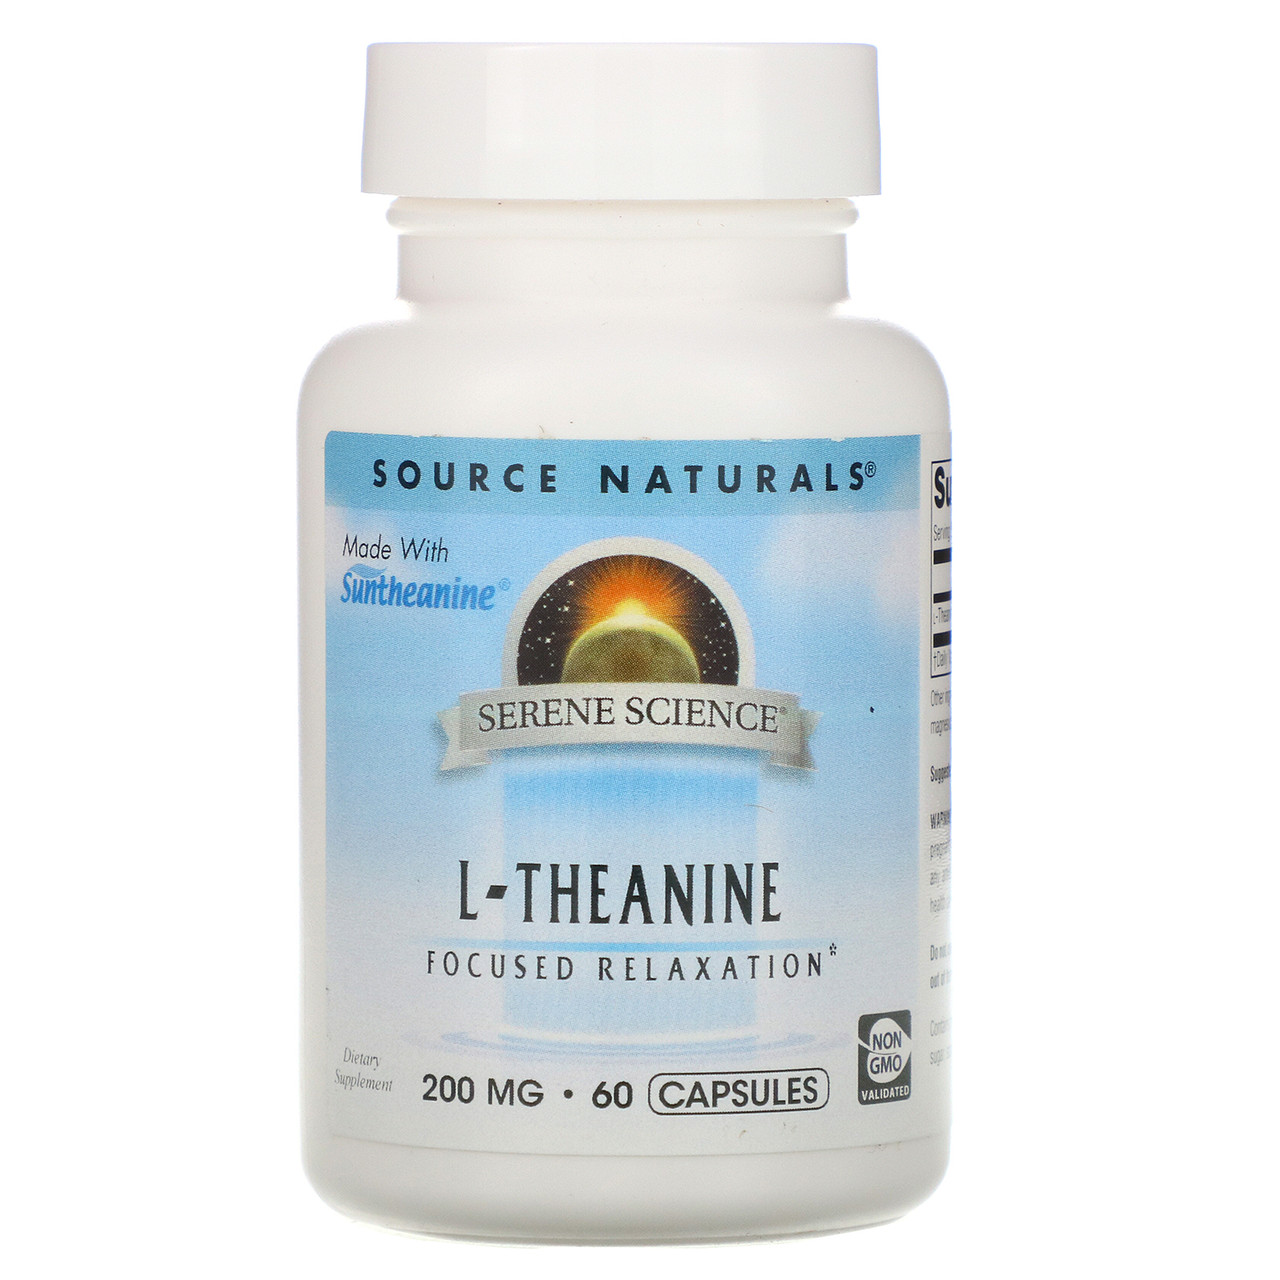 L-Теанін, L-Theanine, Source Naturals, 200 мг, 60 капсул